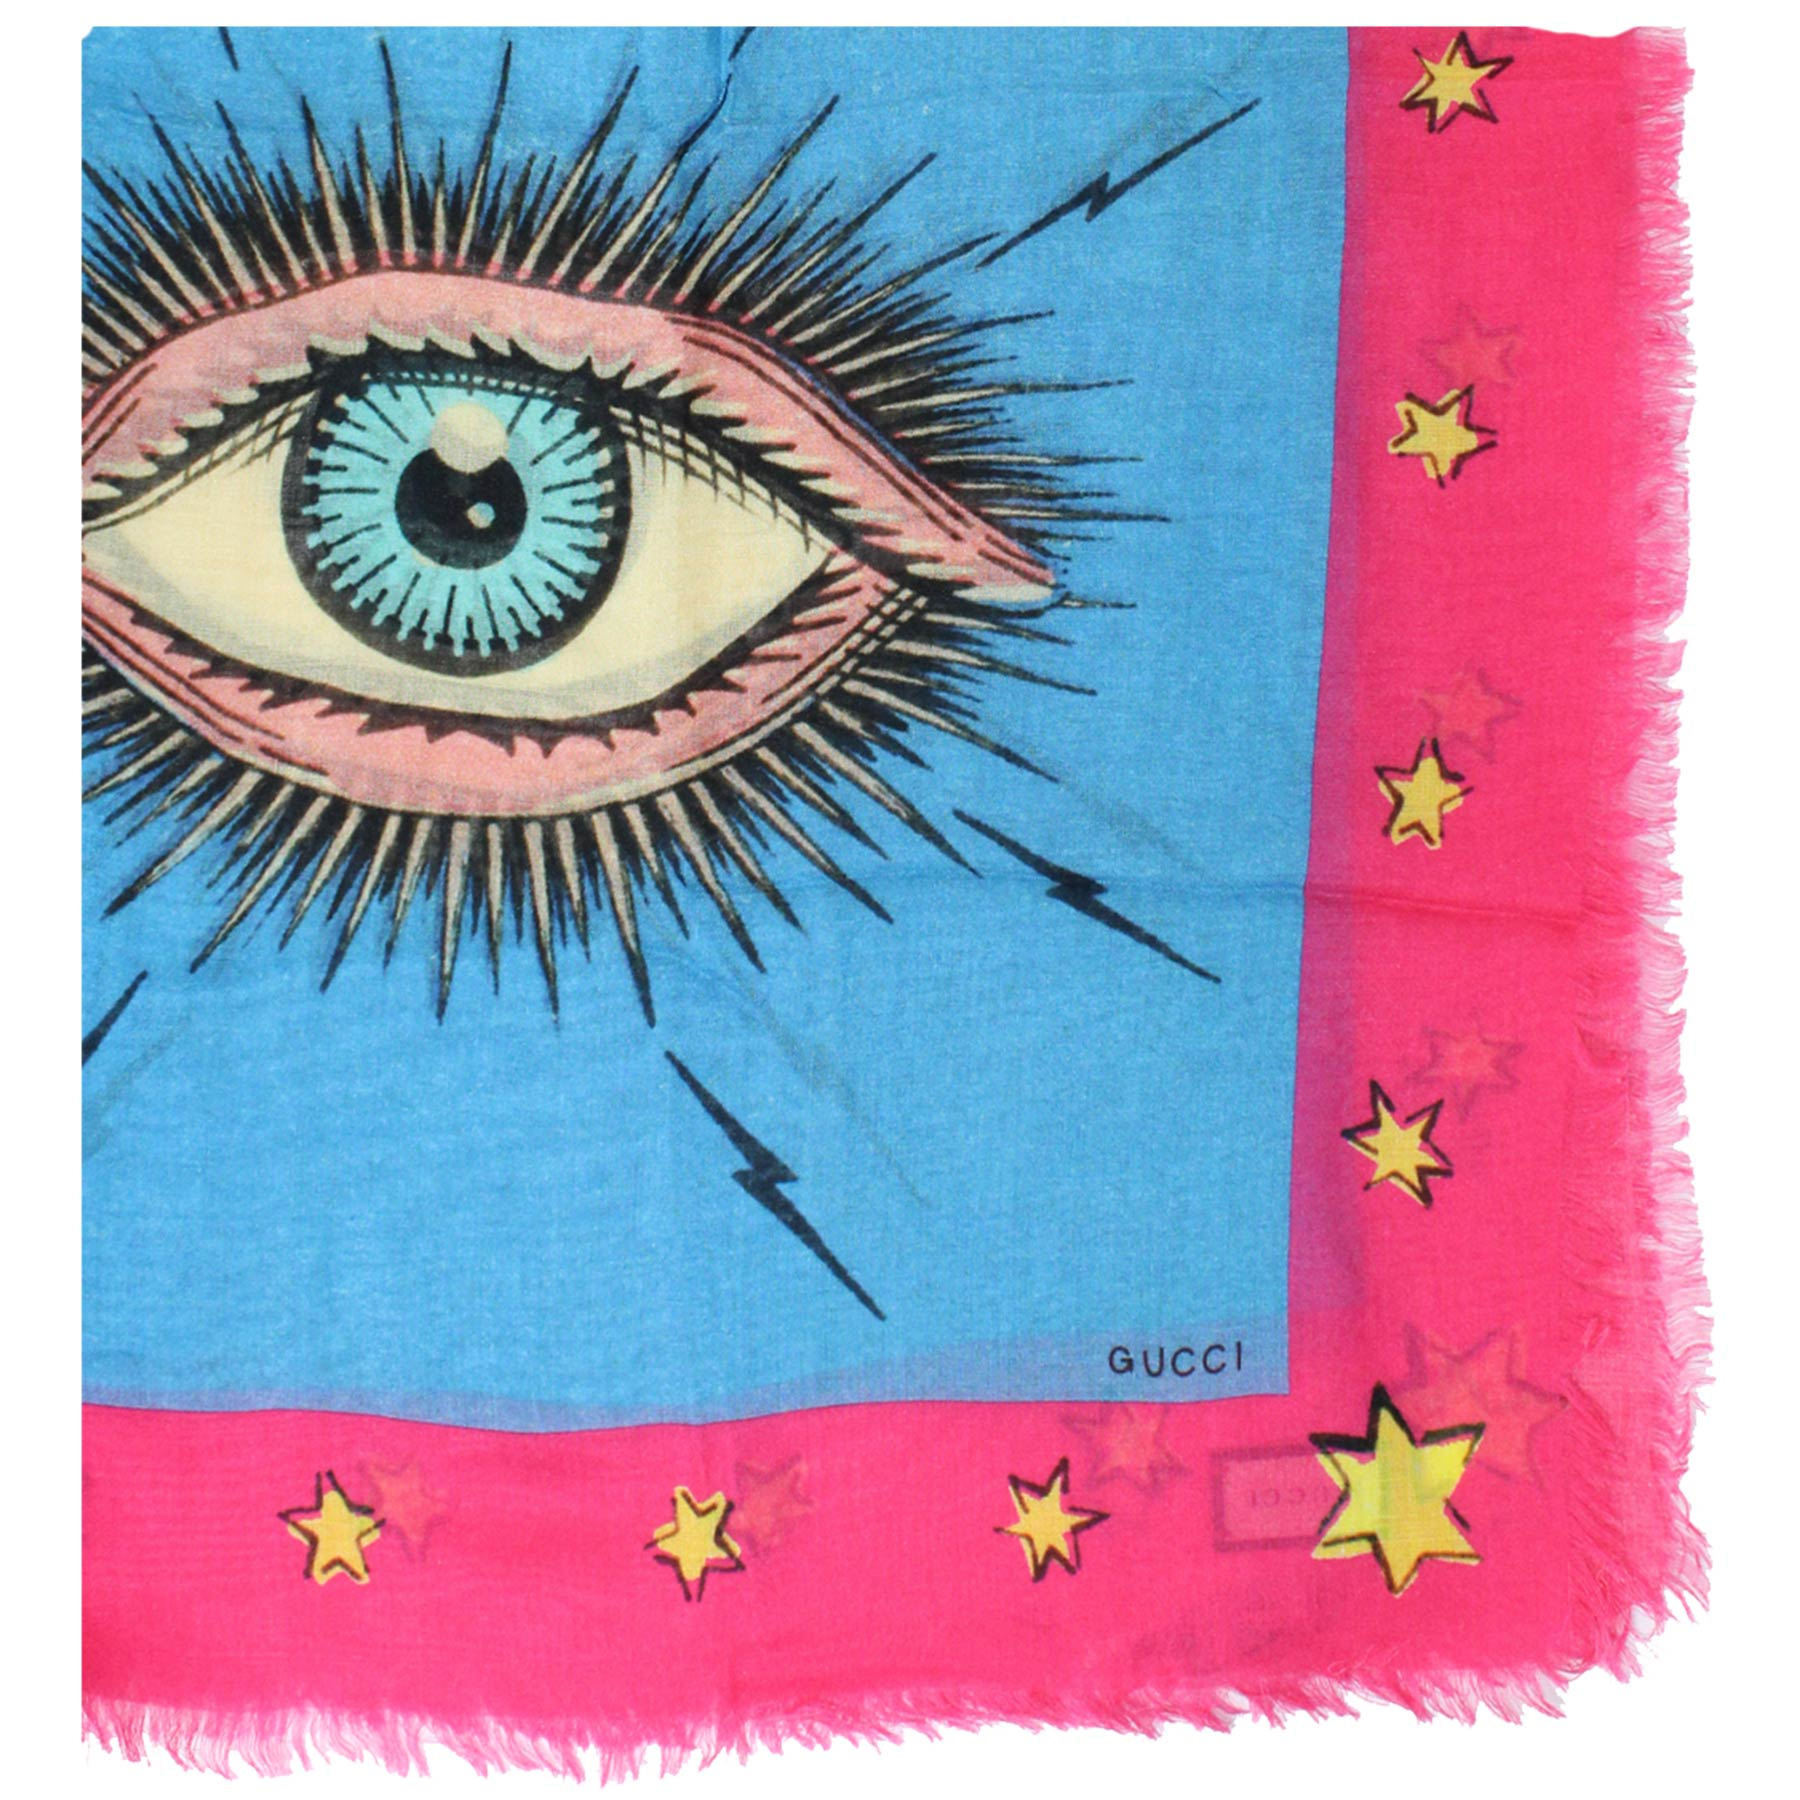 Gucci Scarf Sky Blue Pink Eye Star - Large Modal Silk Wrap